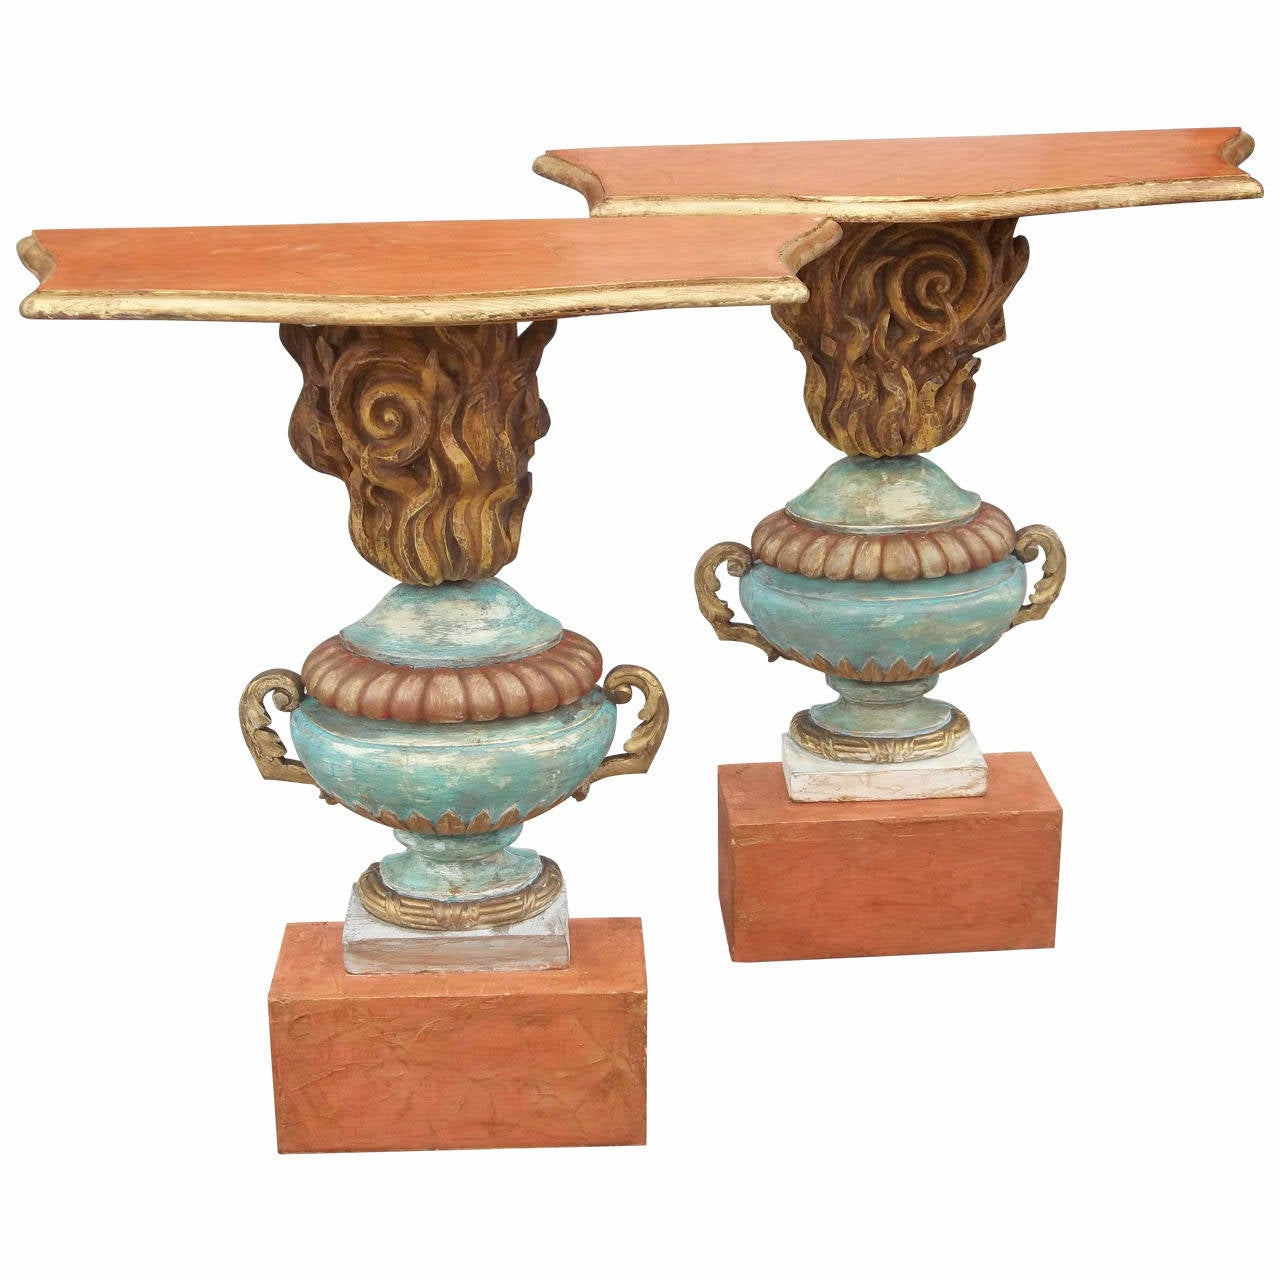 Pair of Italian Robin Egg Blue Painted Wooden Consoles